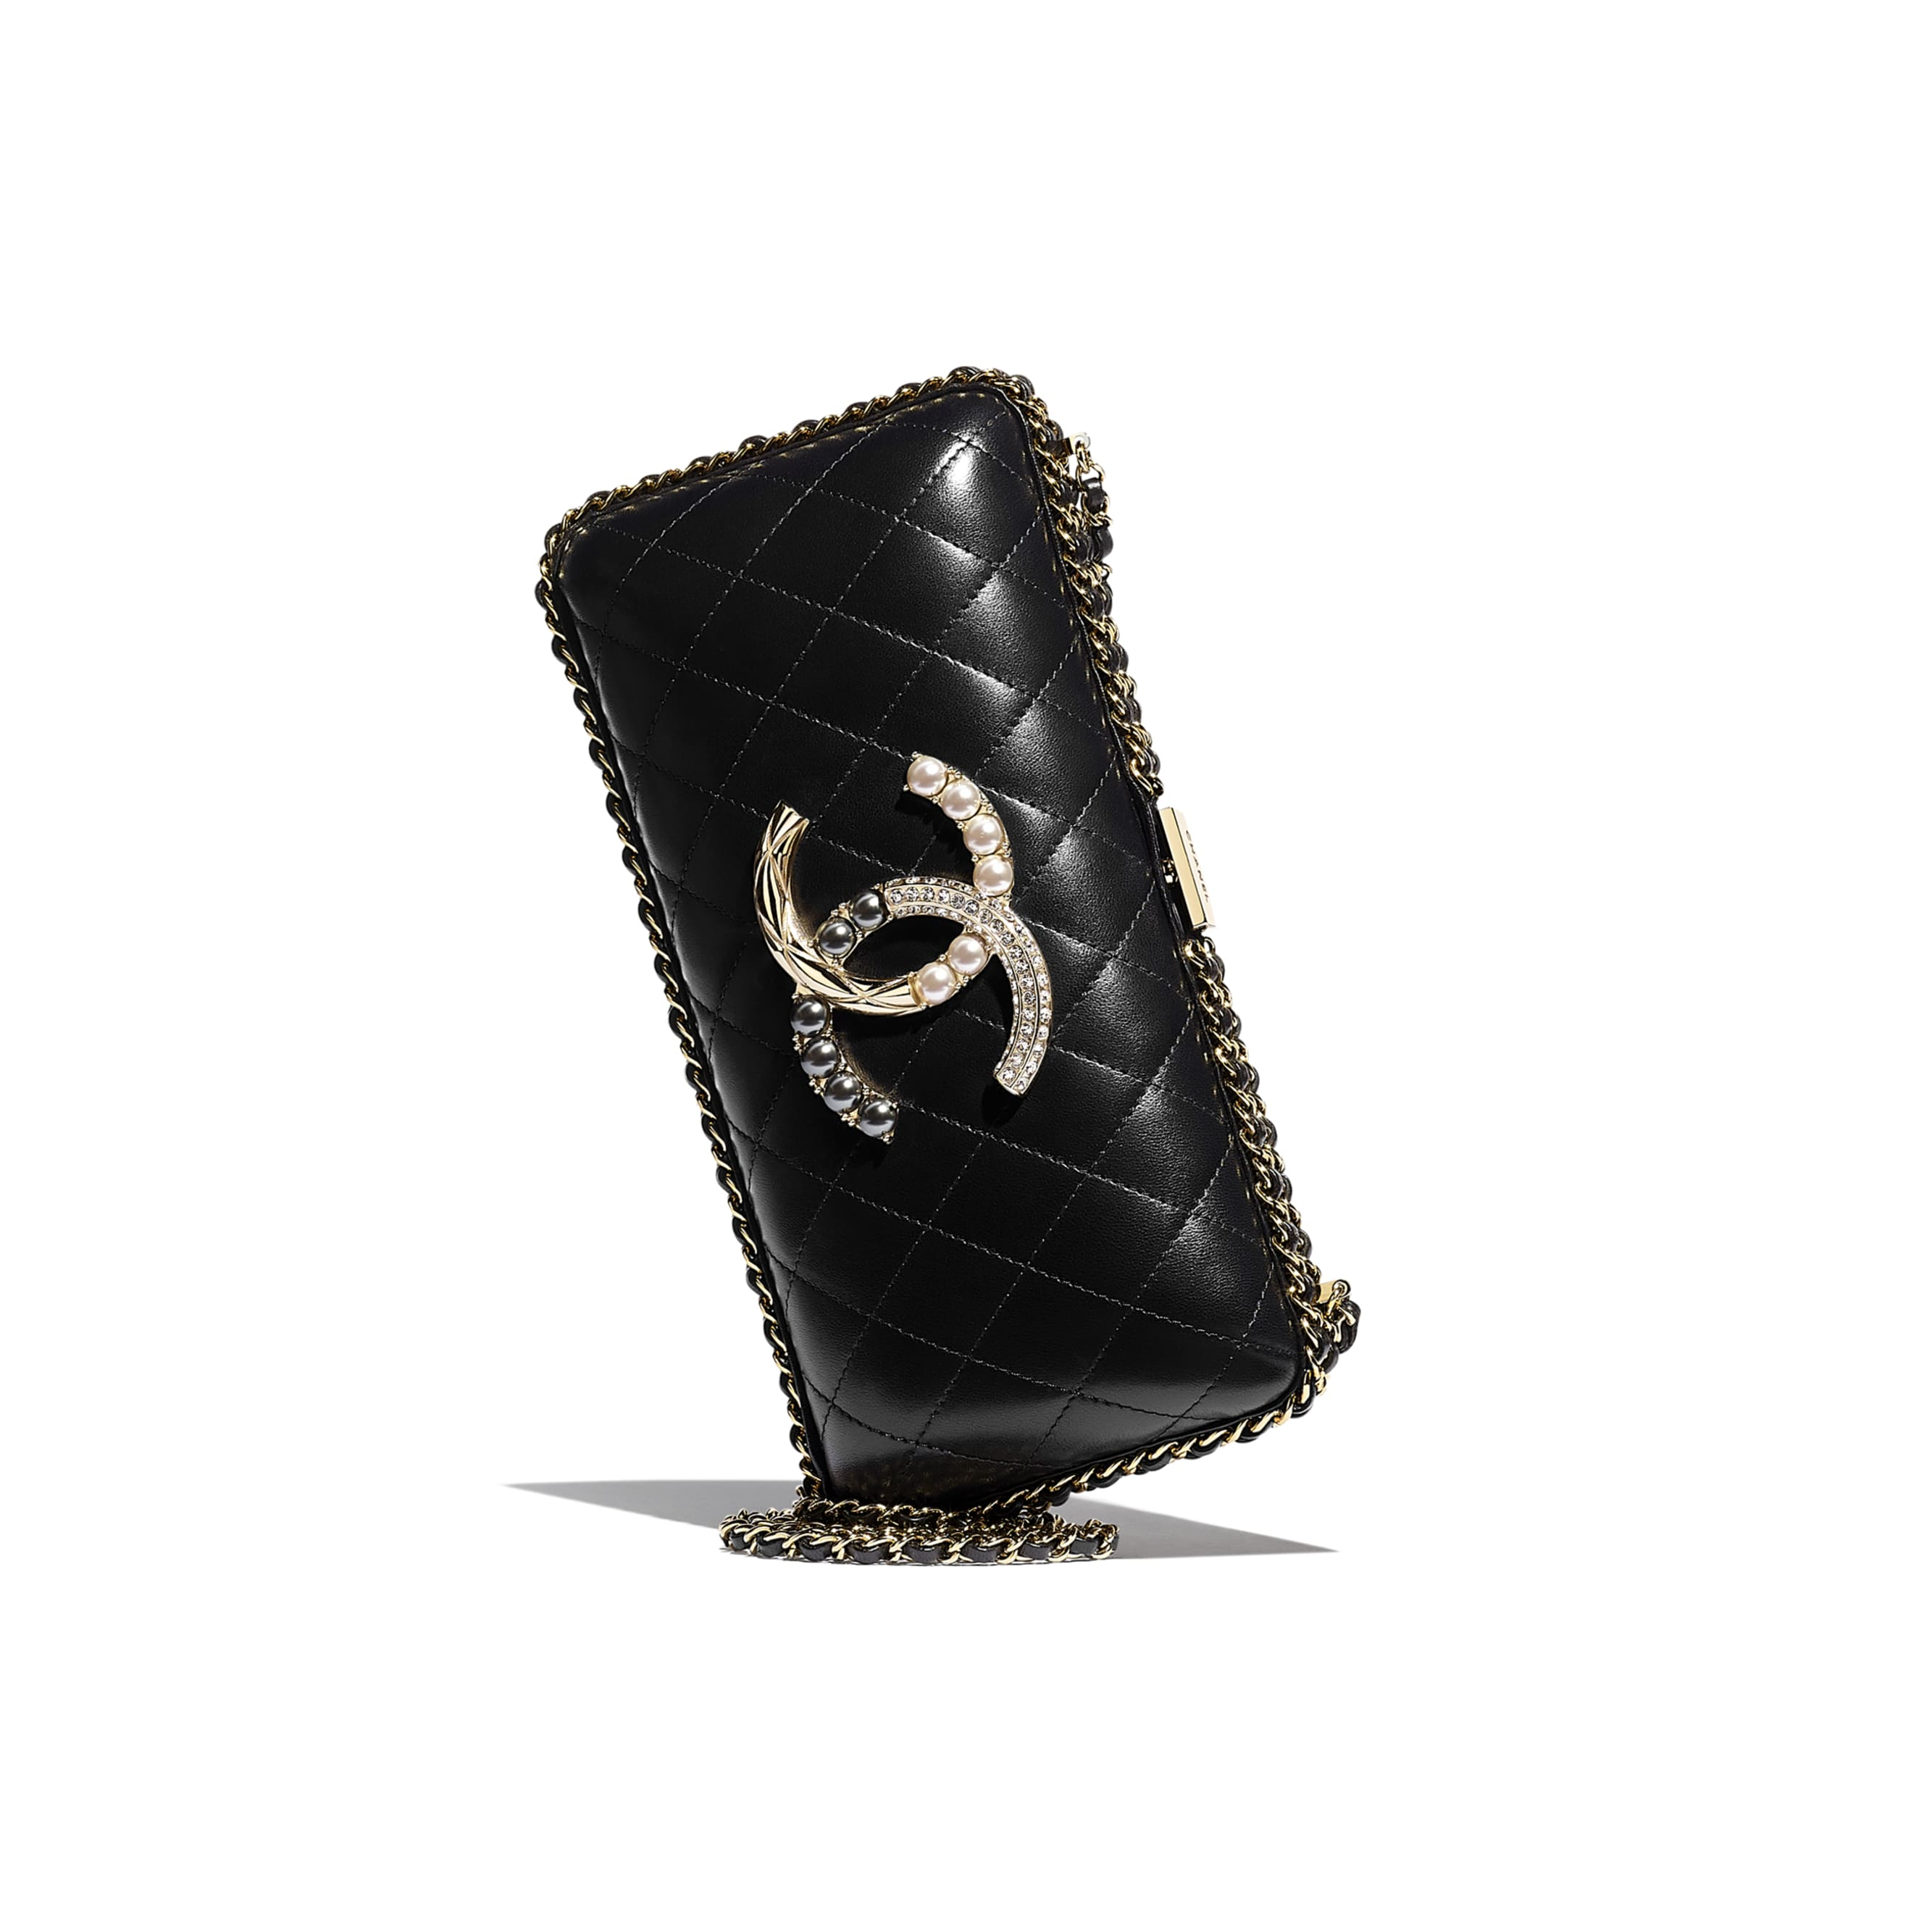 Evening Bag - Black - Lambskin, Imitation Pearls, Diamanté  & Gold-Tone Metal - Extra view - see standard sized version